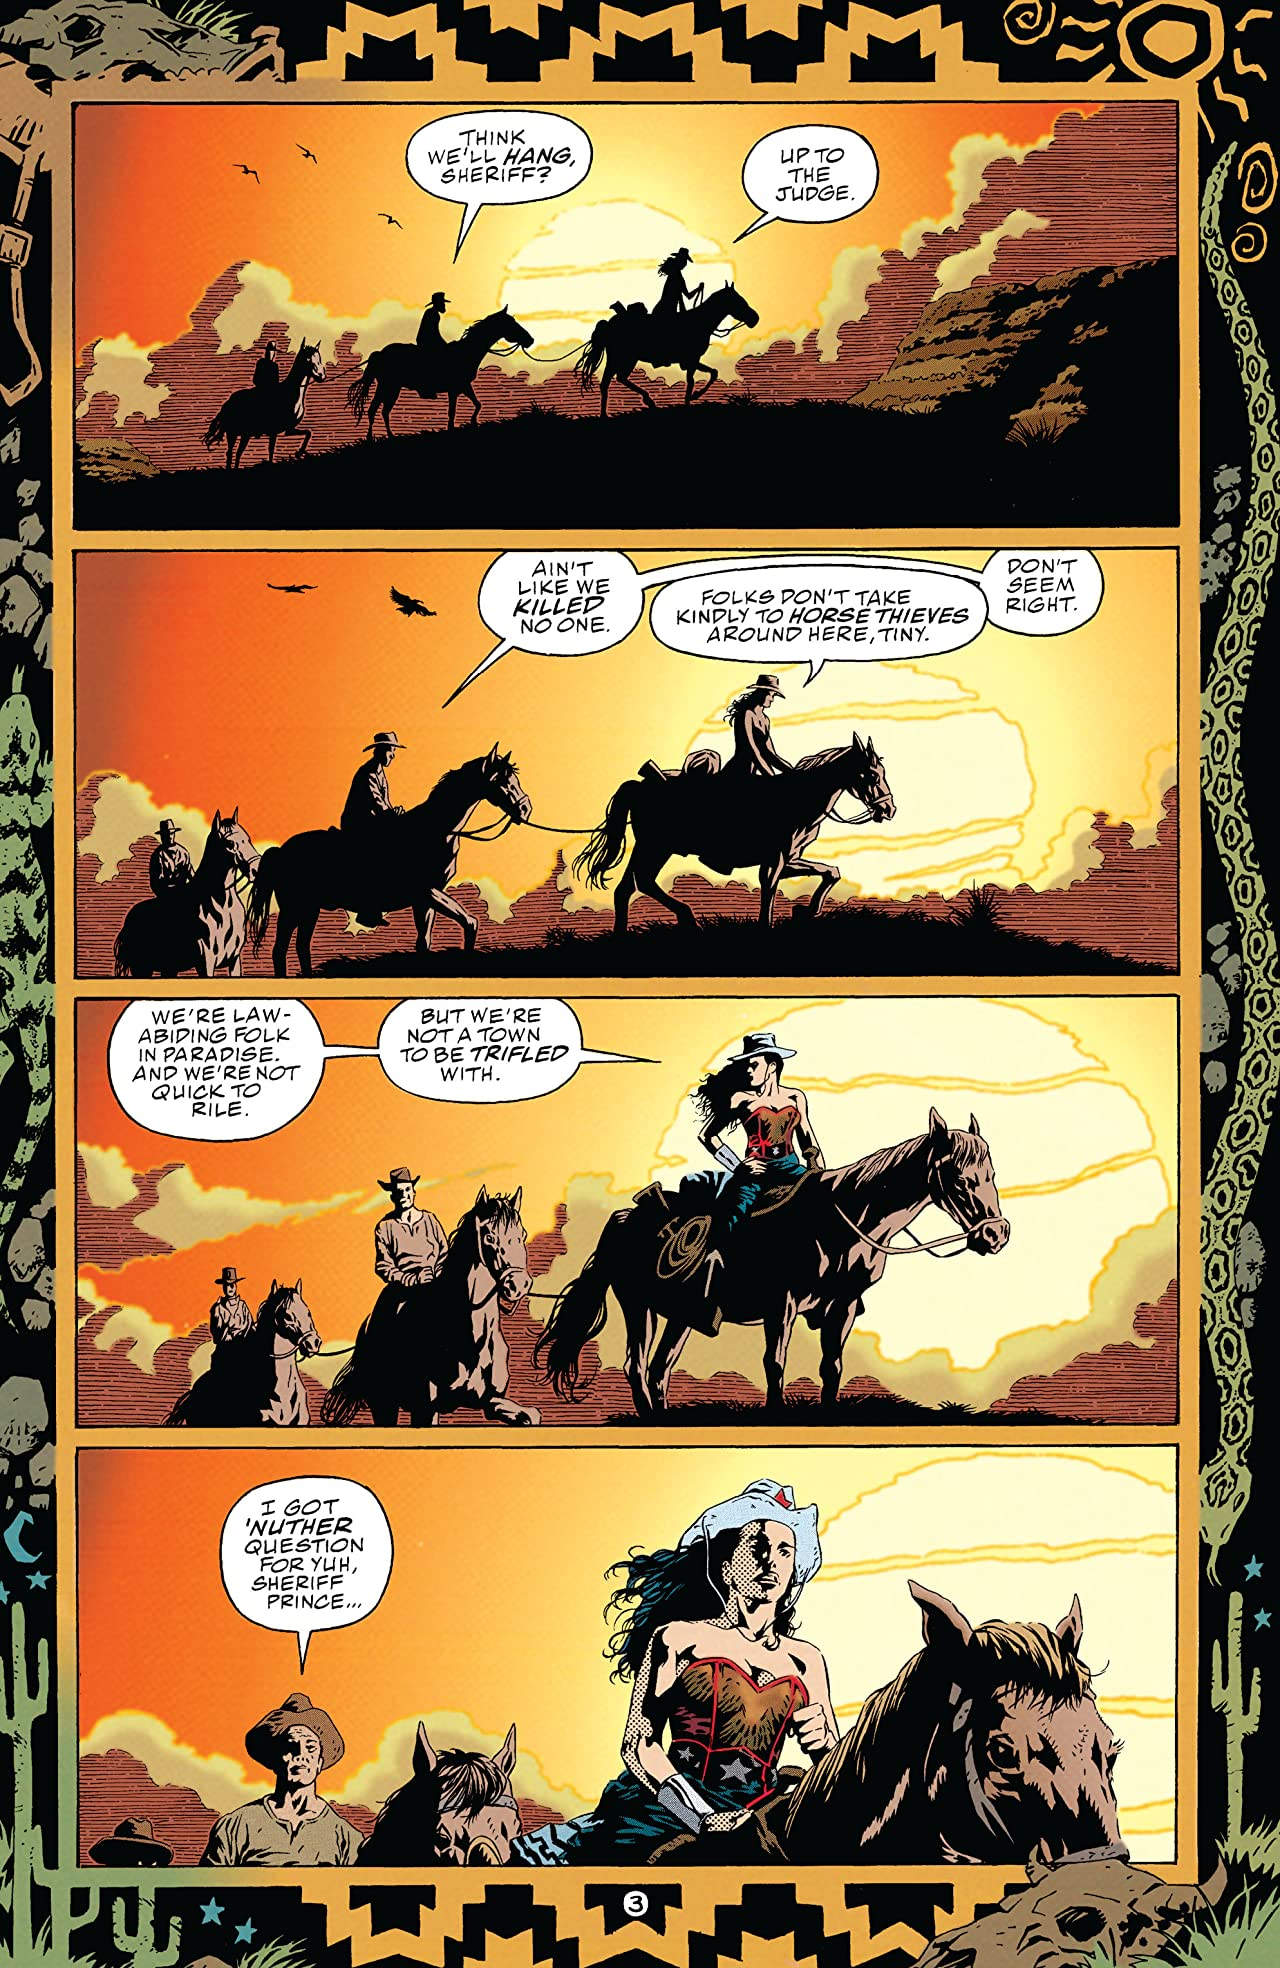 Justice Riders #1